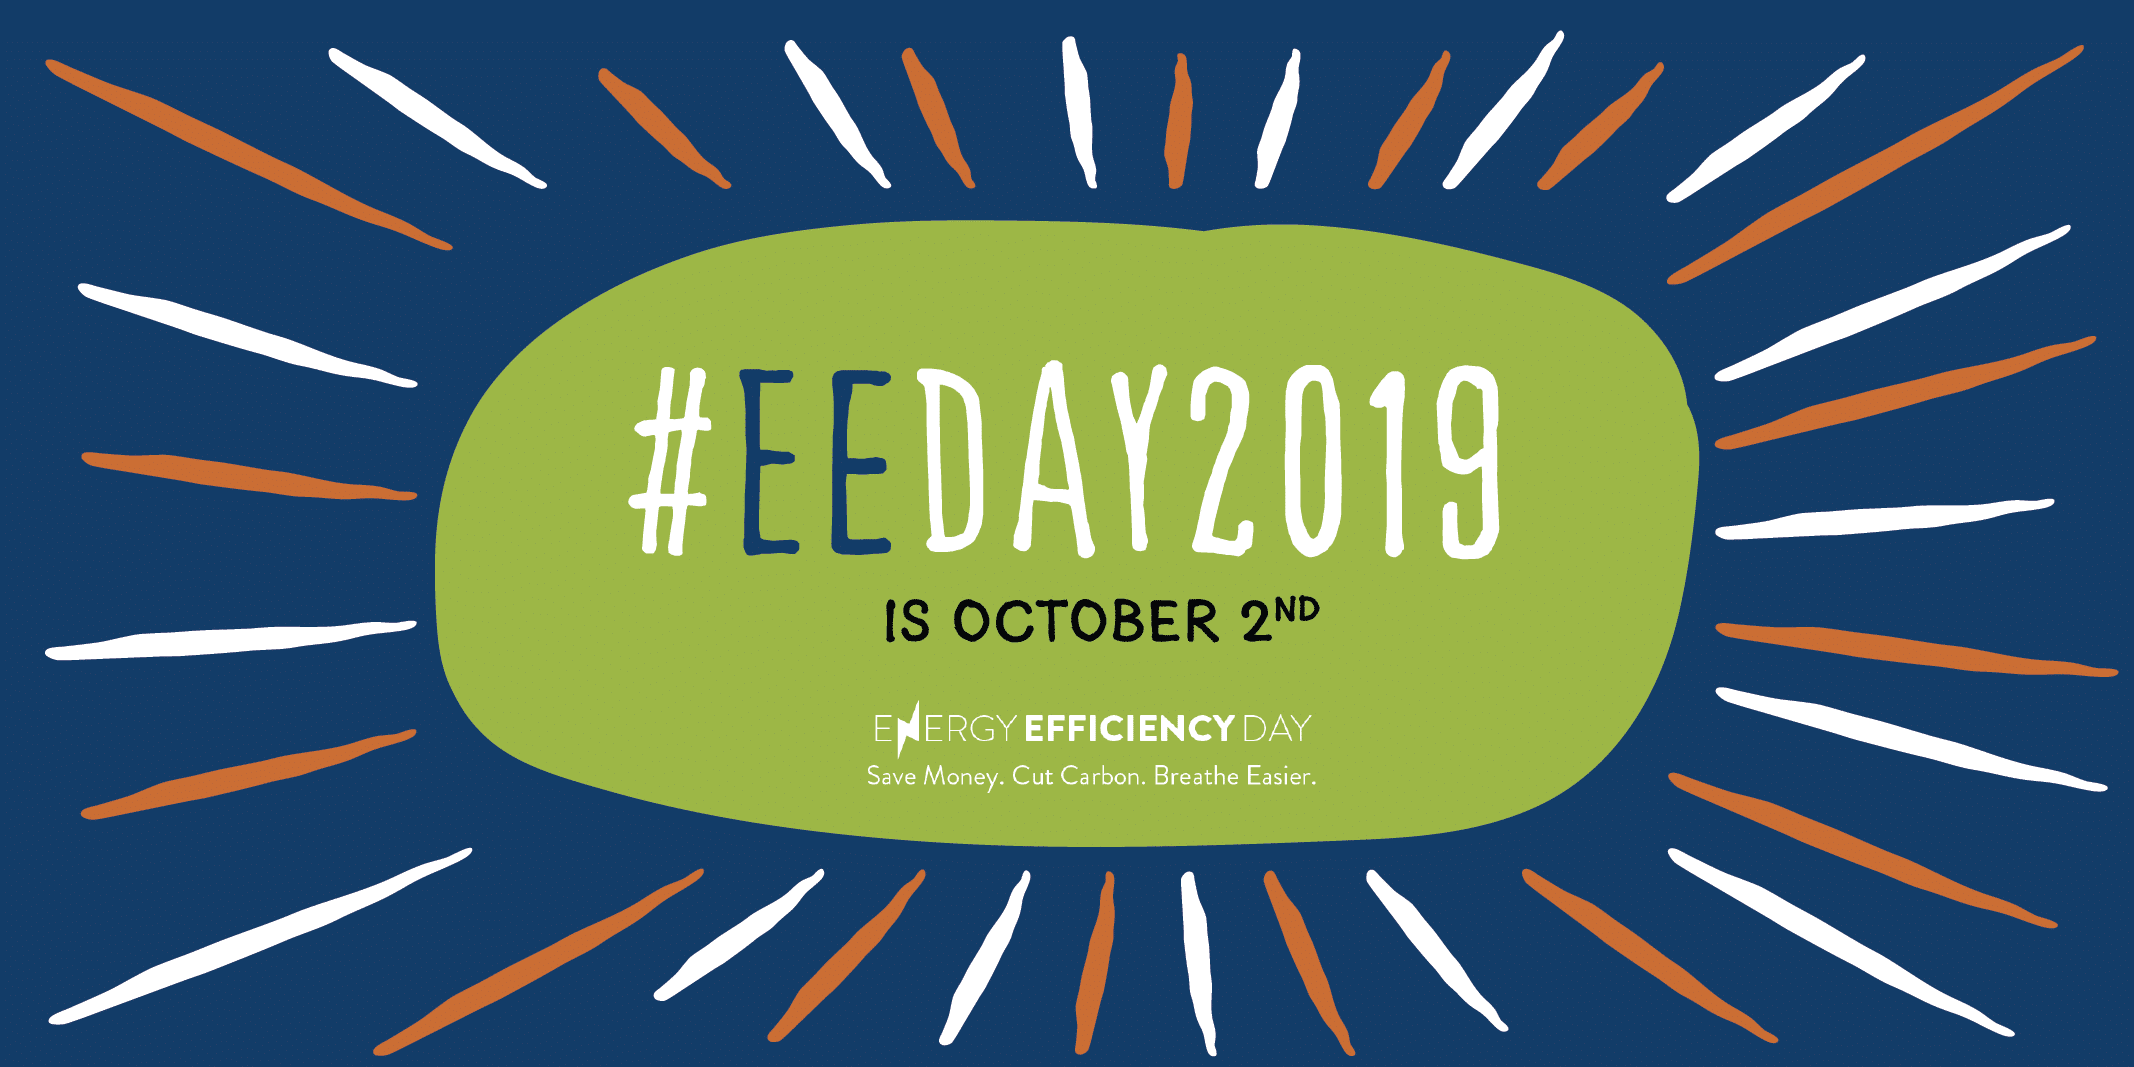 national-ee-day-2019-eeday2019-energy-efficiency-day-kw-engineering-energy-consultants